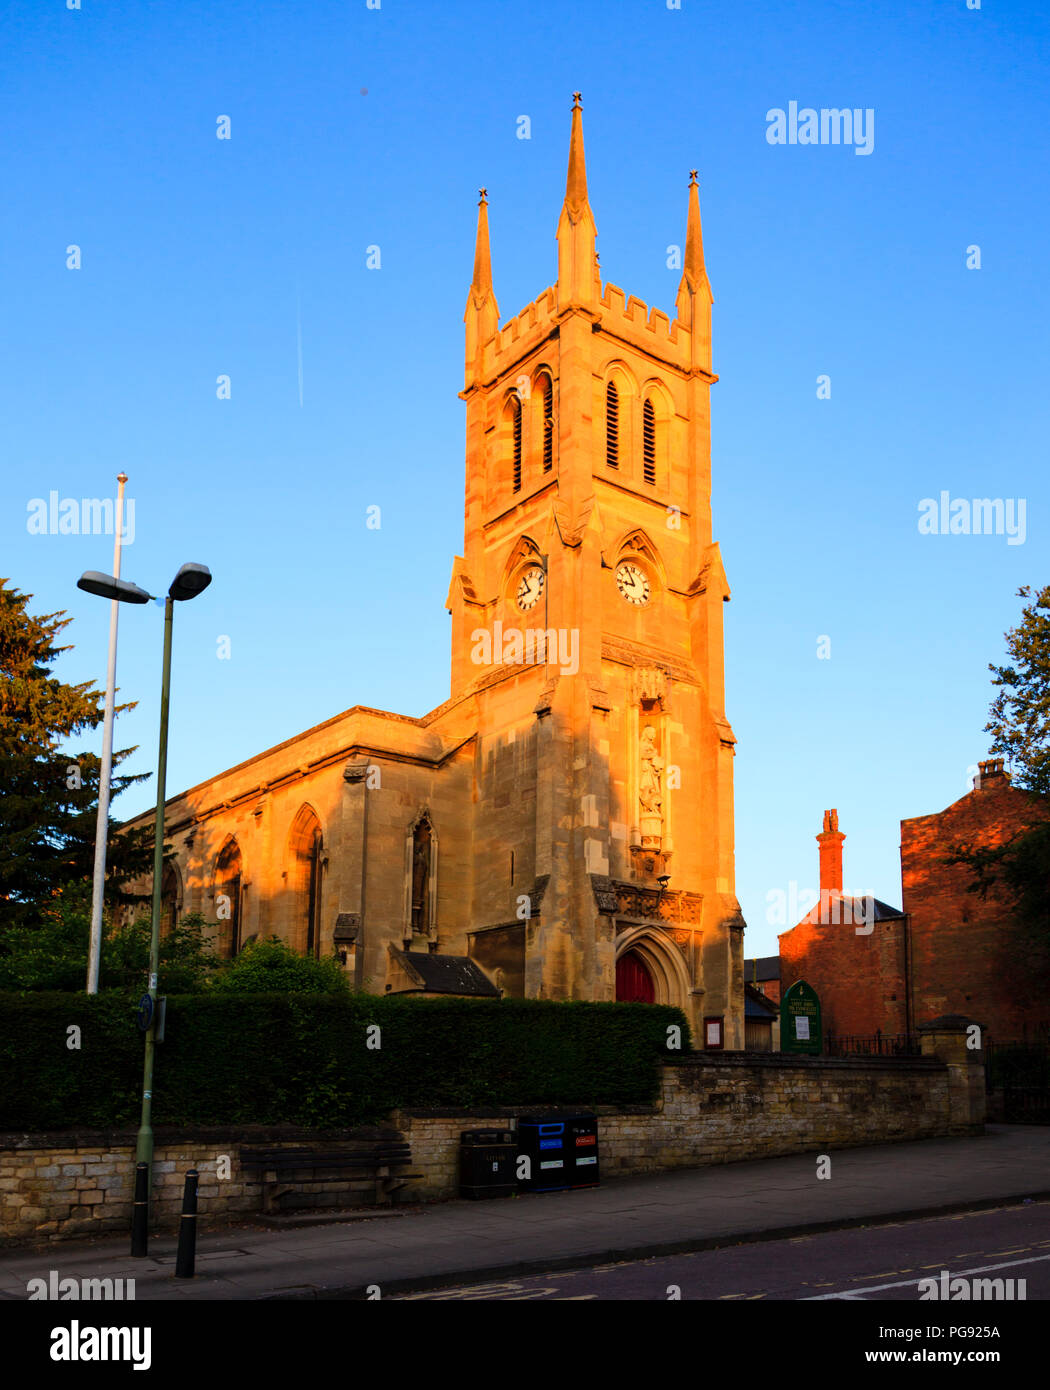 St John the Evangelist church in Banbury, Oxfordshire, UK - Stock Image